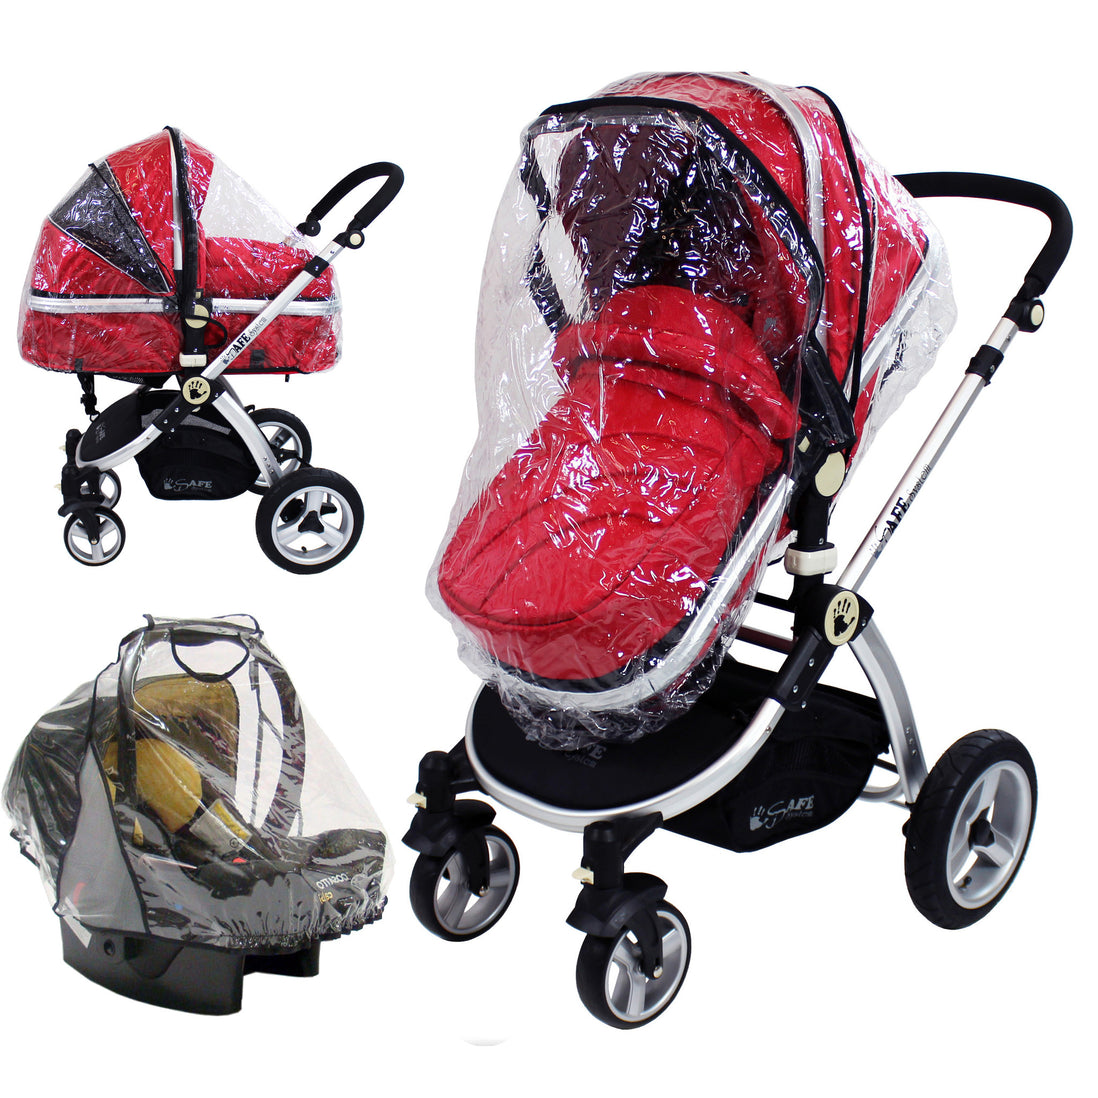 PVC RAINCOVER TO FIT QUINNY BUZZ CARRYCOT PRAM BODY